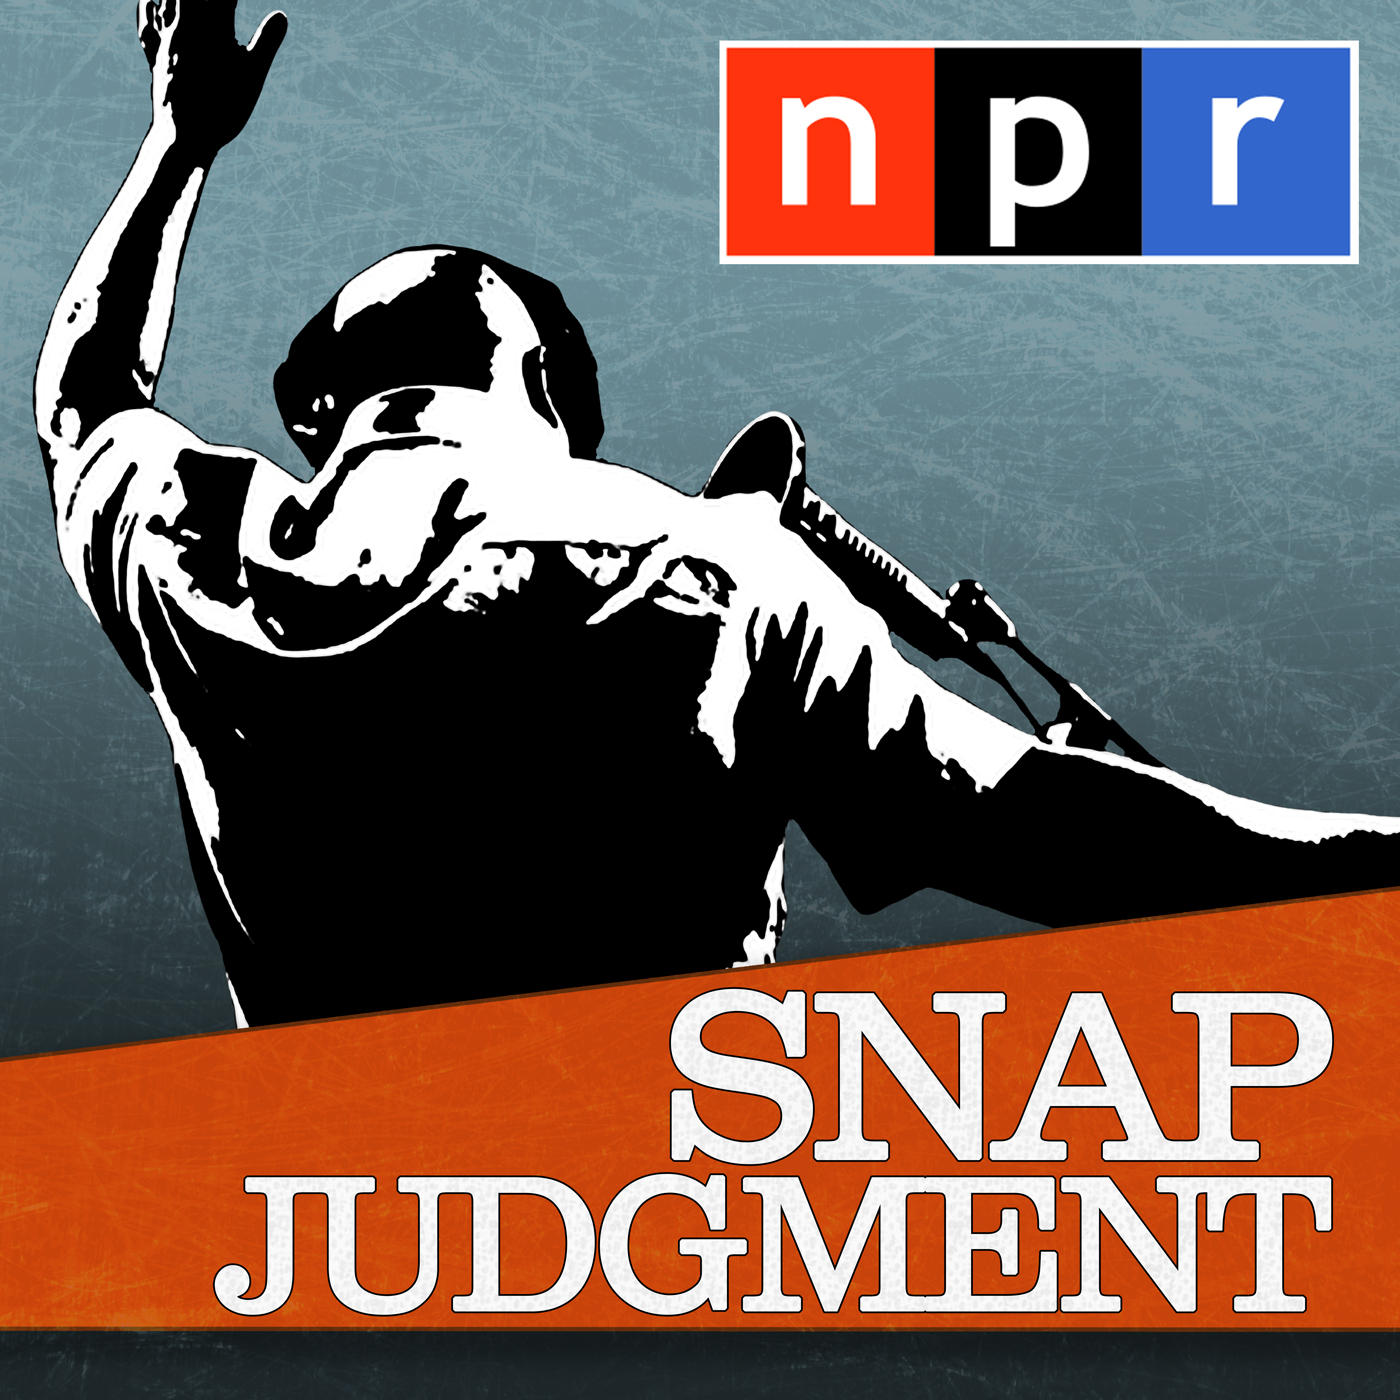 7 Minute Stories featured on NPR's hit show Snap Judgement! Listen to the segment below. -